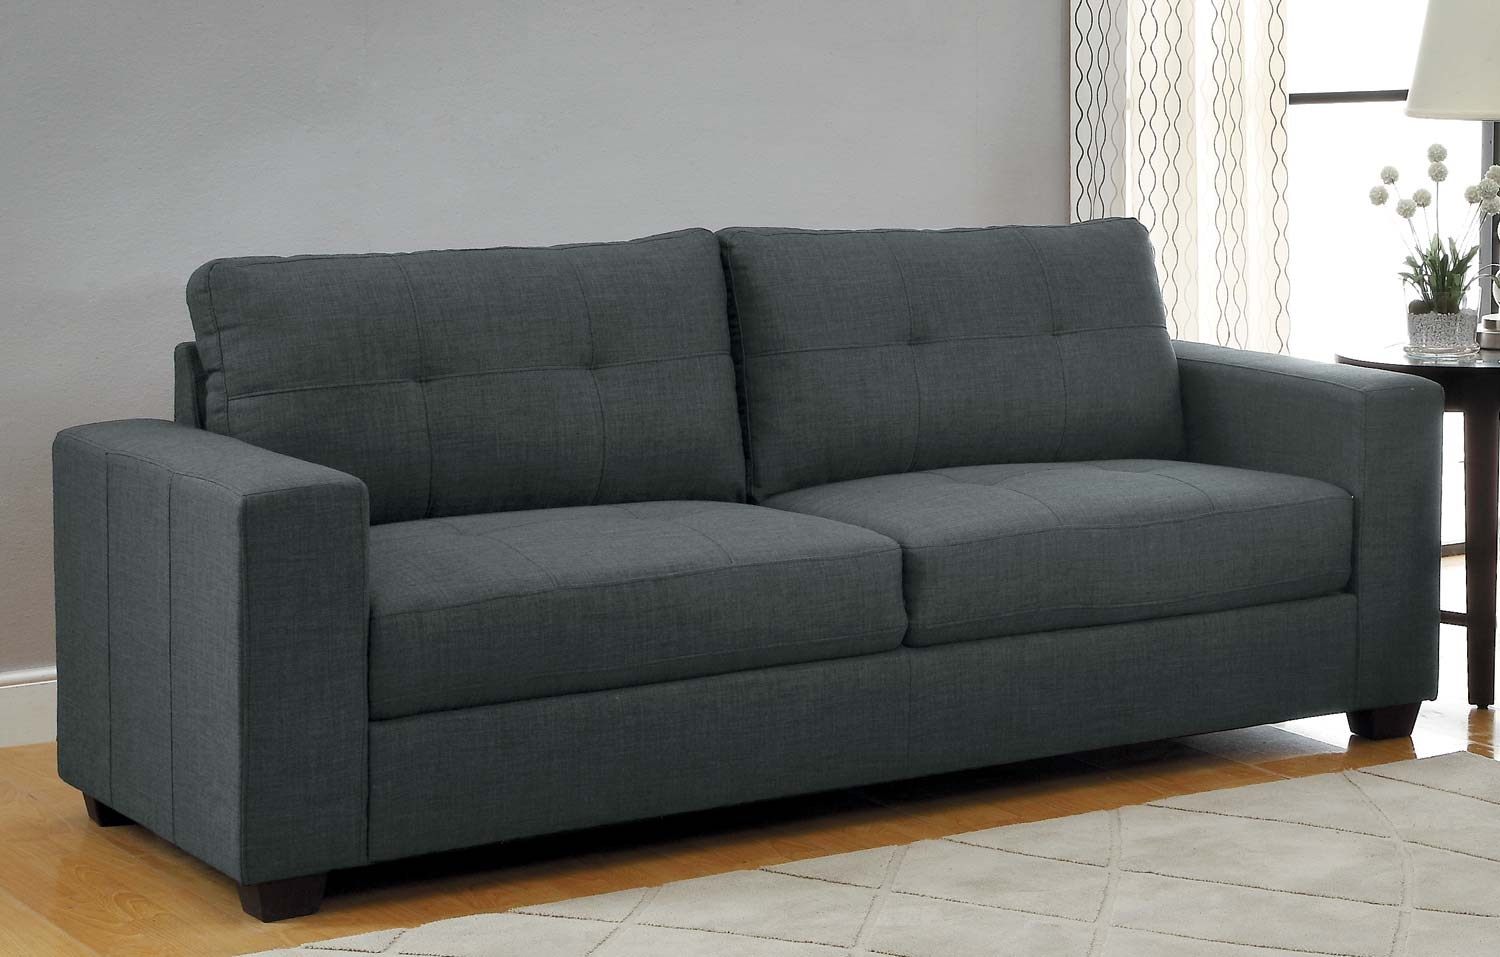 Dark Grey Sofa With Charcoal Grey Sofa (Image 5 of 15)